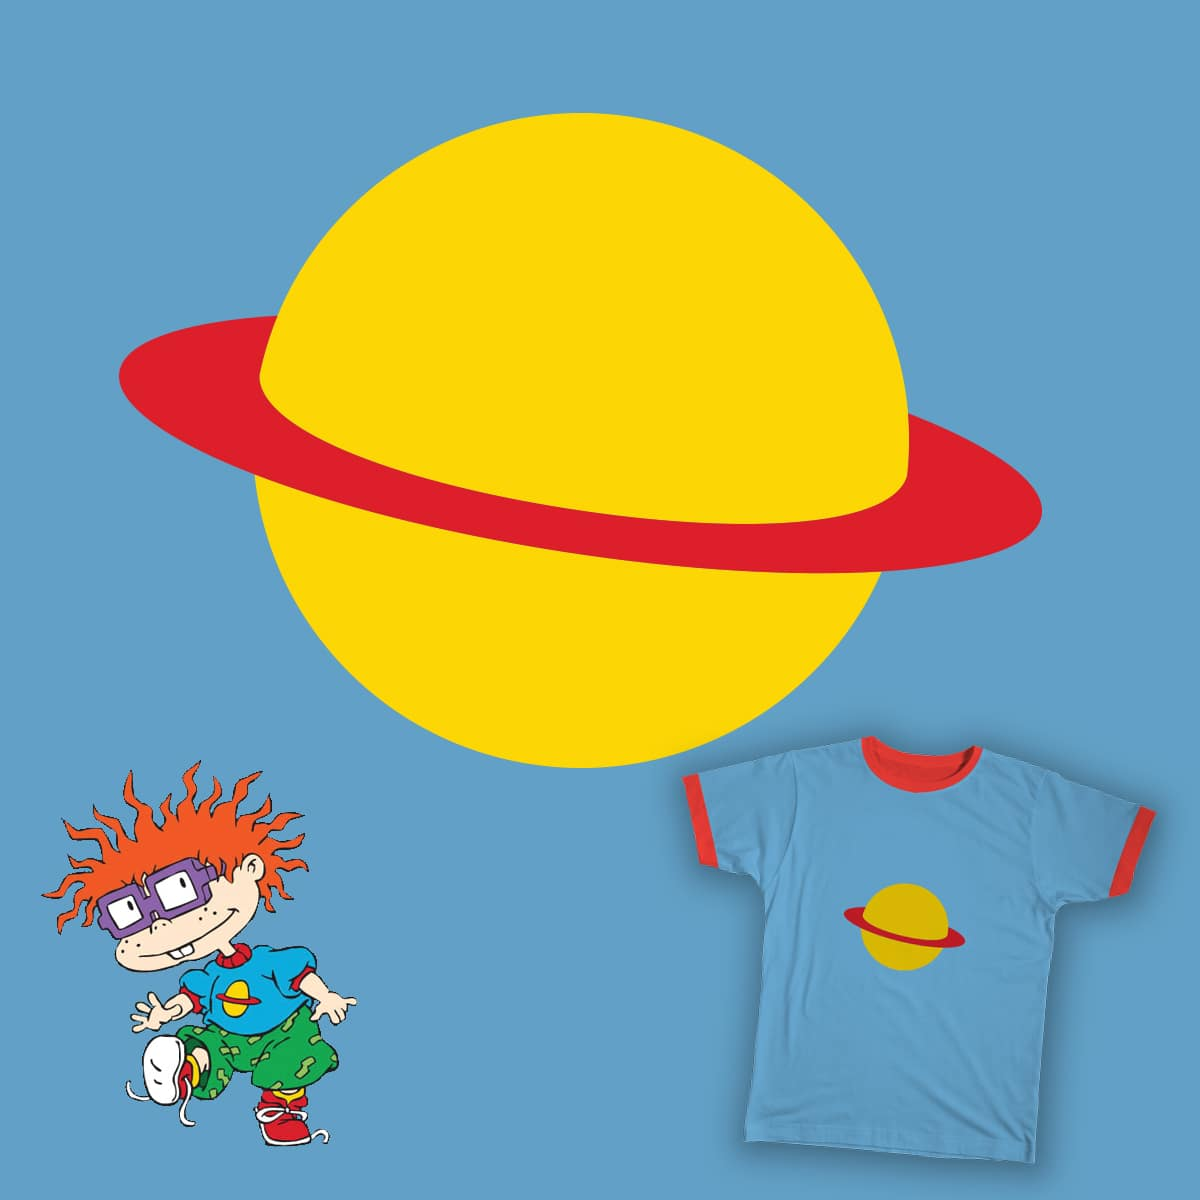 Be more like Chuckie Finster! by fattybloor on Threadless